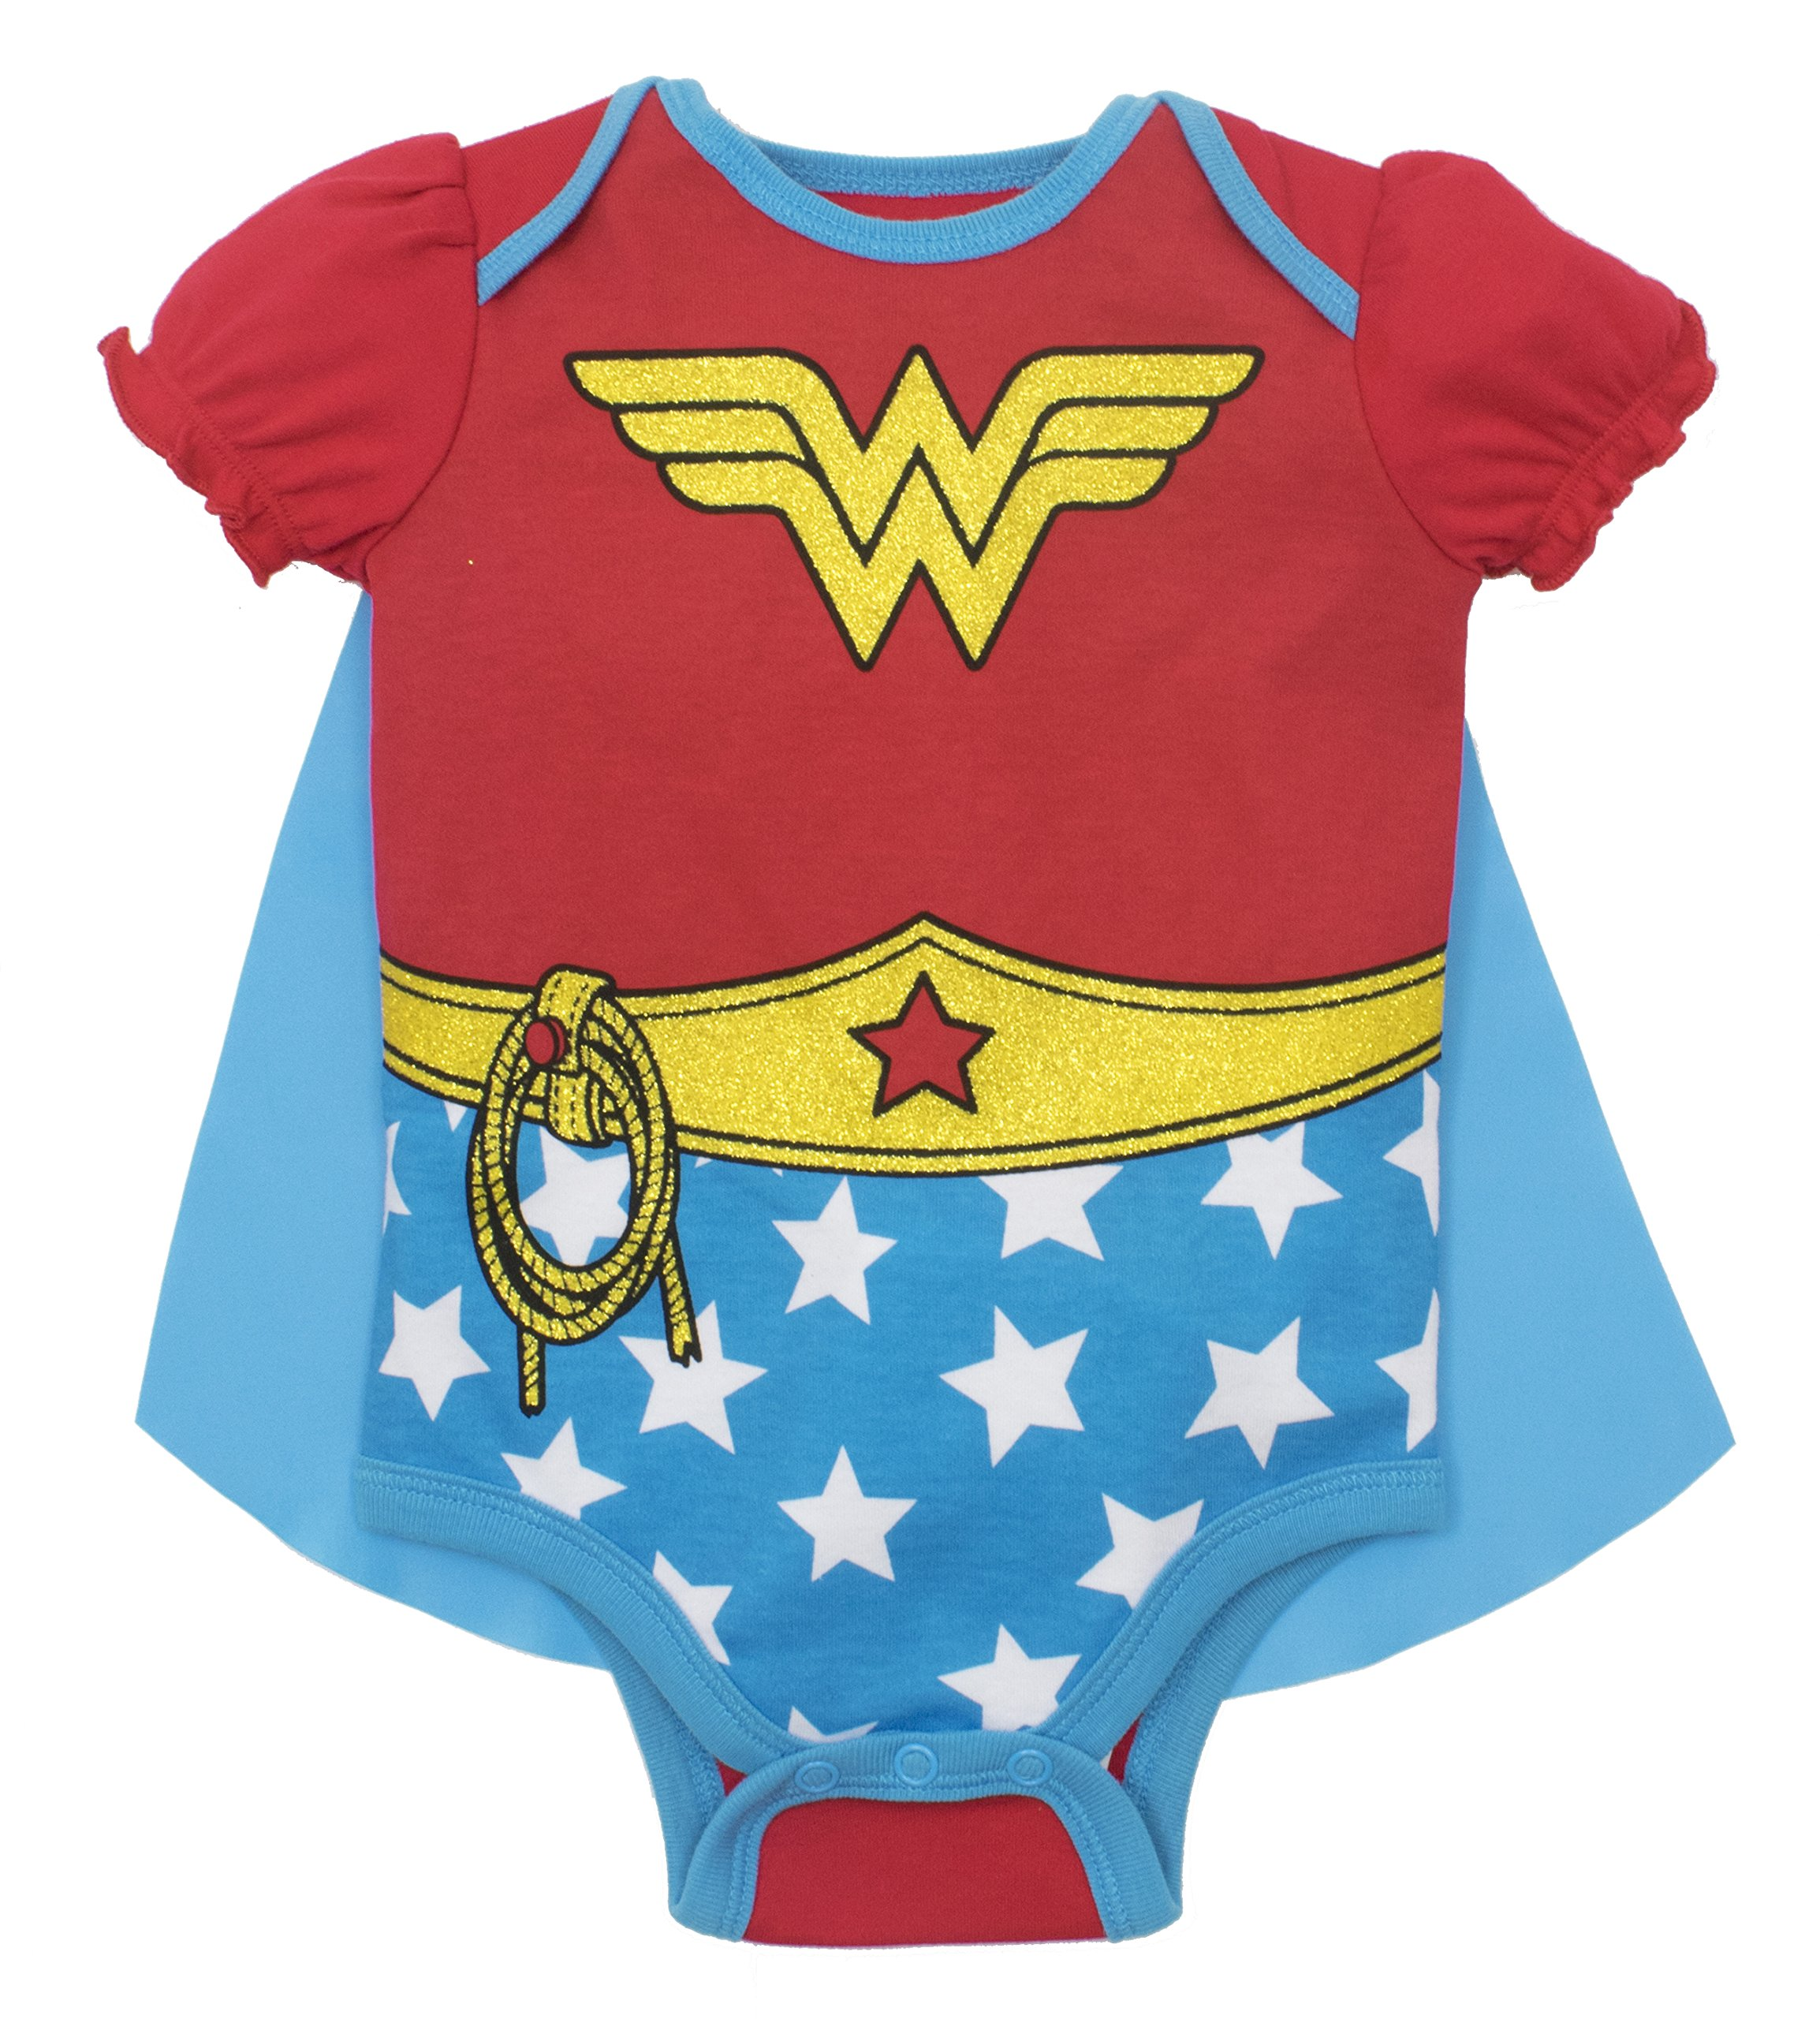 Wonder Woman Baby Girls' Costume Bodysuit with Cape, Red (12-18 Months)